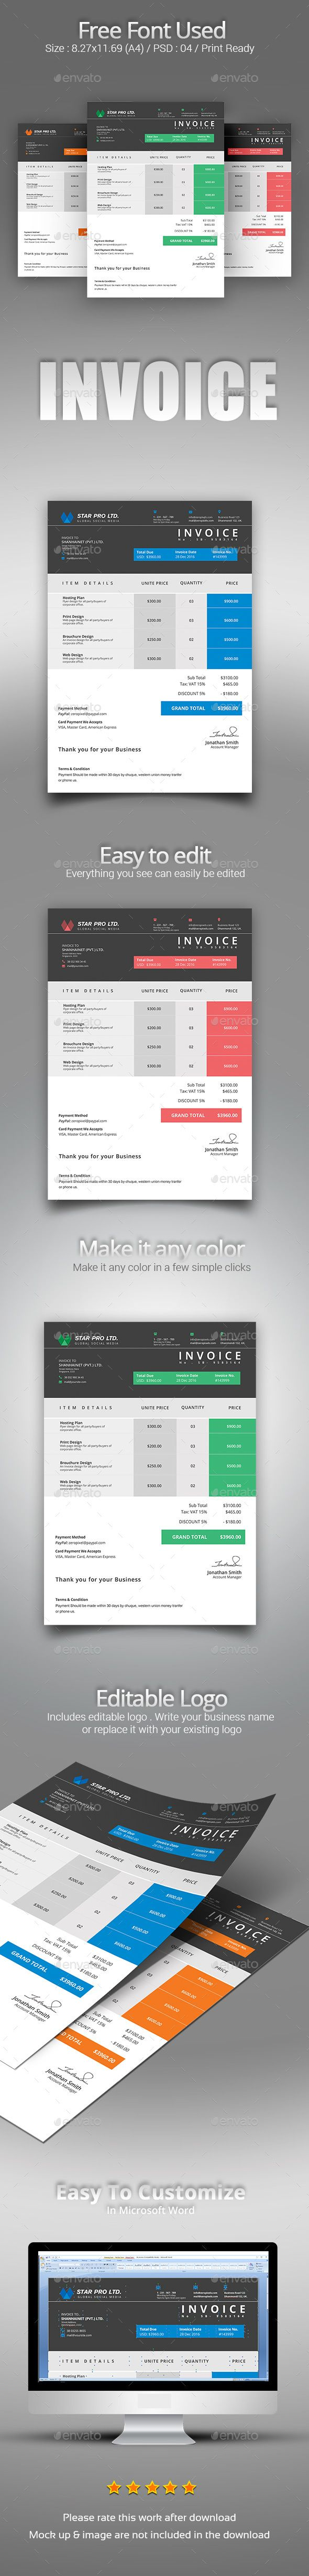 Commercial Invoice Template Ups Word Best  Microsoft Word Invoice Template Ideas On Pinterest  How To Make Invoices On Excel with Point Of Sale Receipt Printer Excel Clean Invoice Template Psd Vector Eps Indesign Indd Ai Illustrator Ms  Word Free Online Invoicing Software